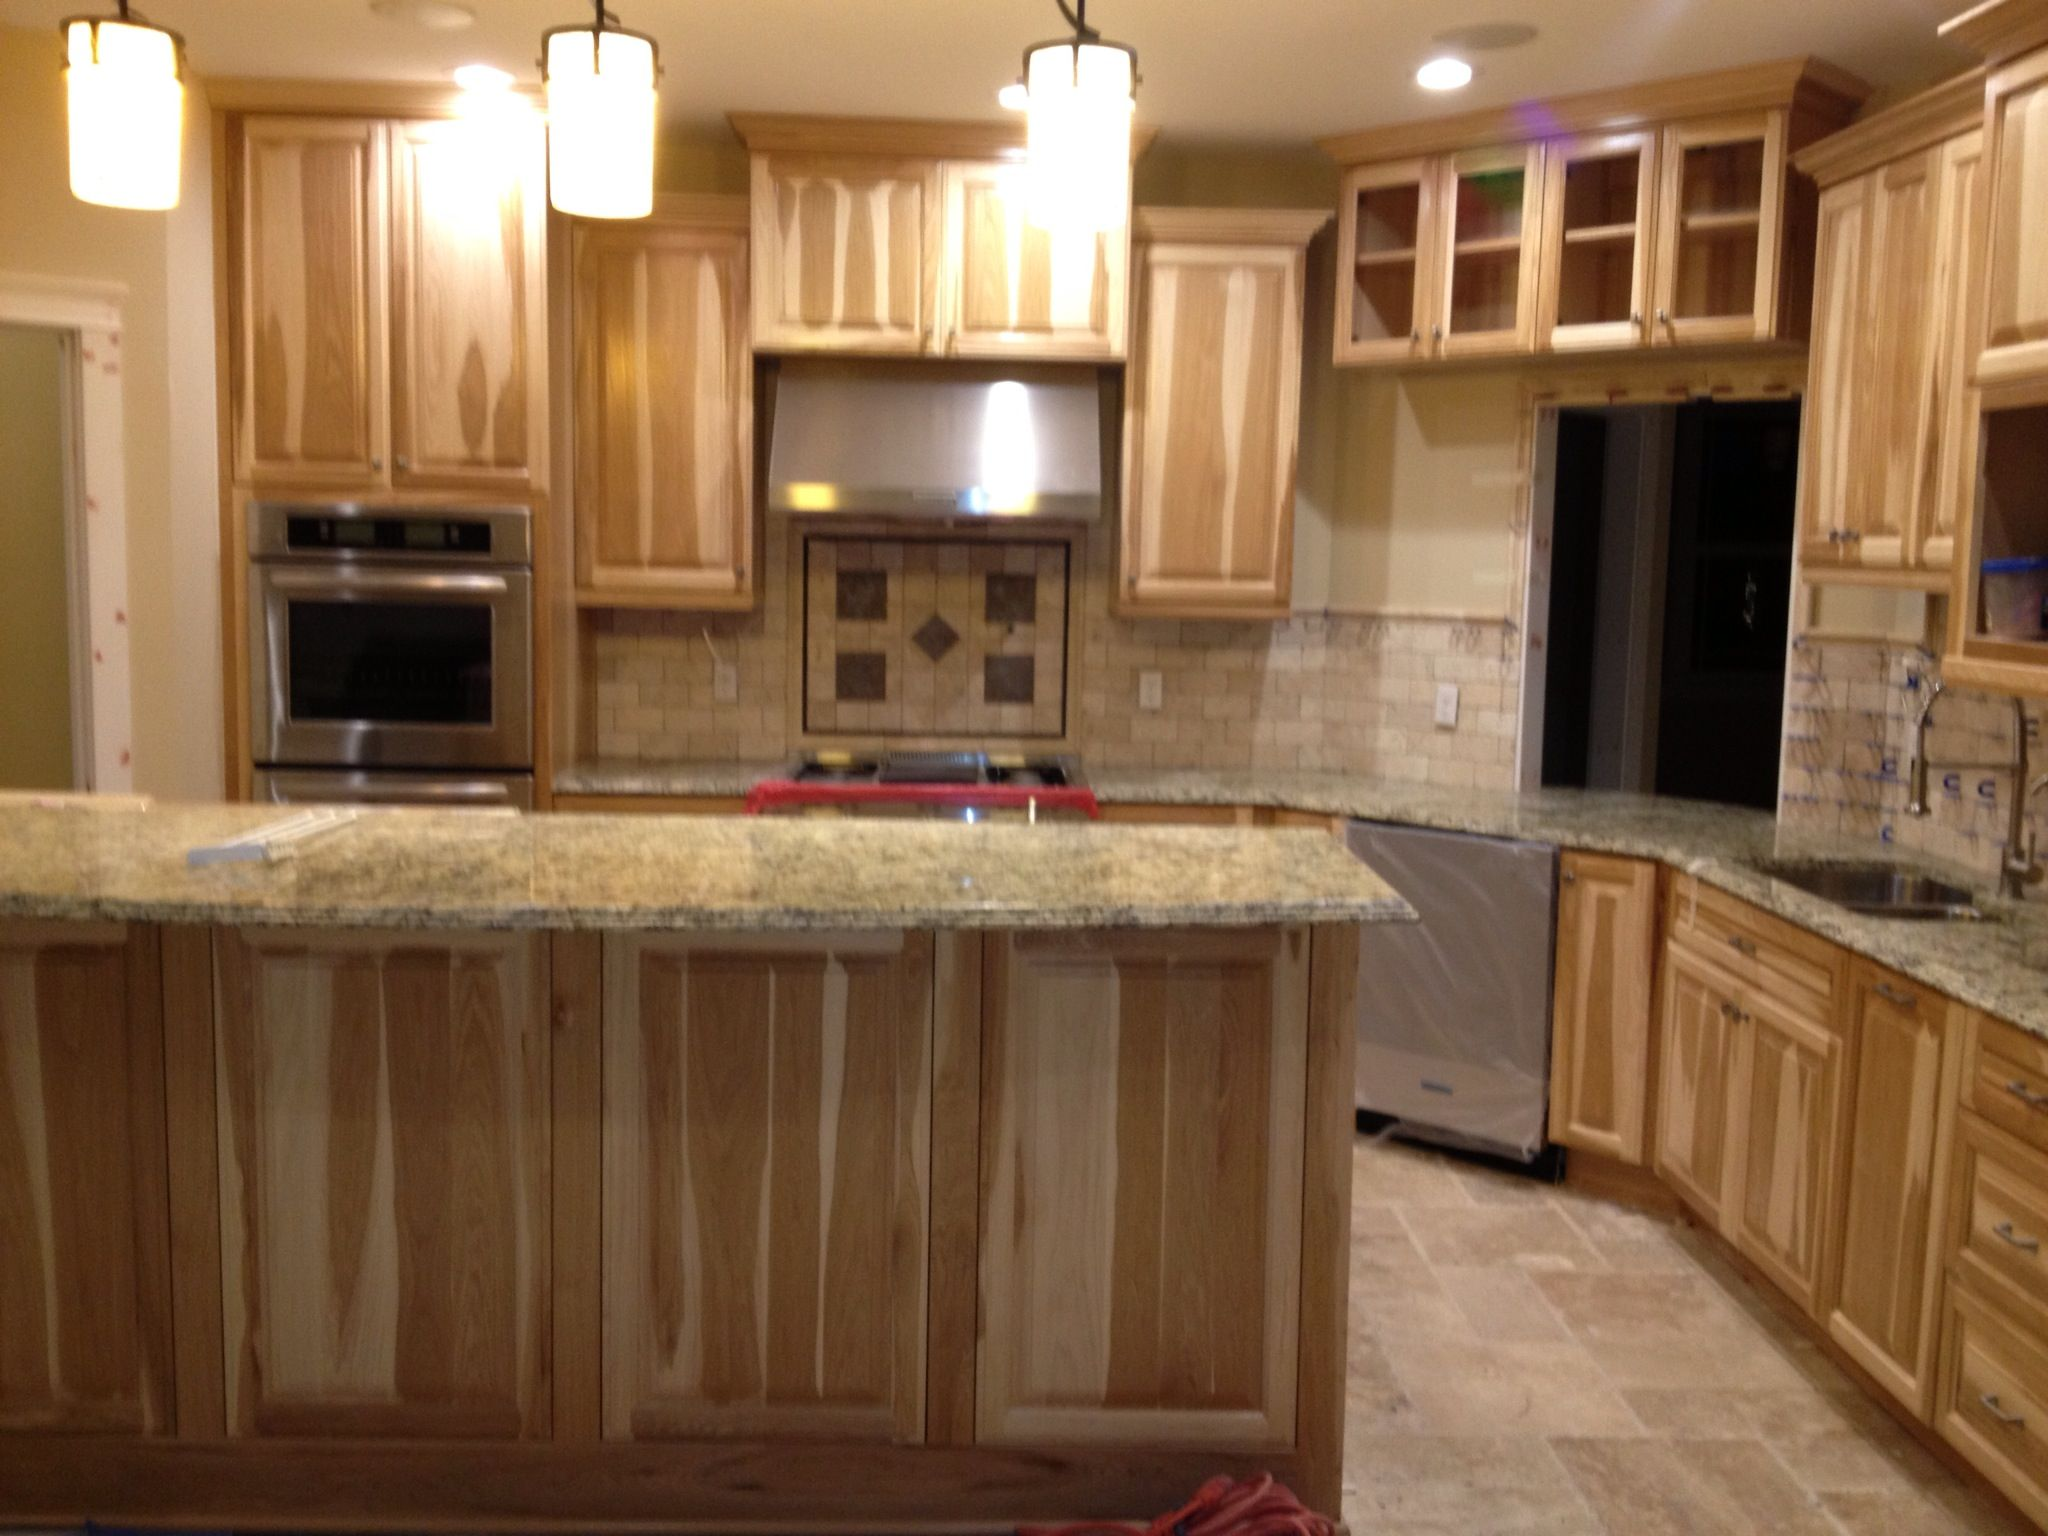 Pictures of kitchen cabinets and granite countertops - Kitchen With Hickory Cabinets And Travertine Backsplash With Granite Countertops